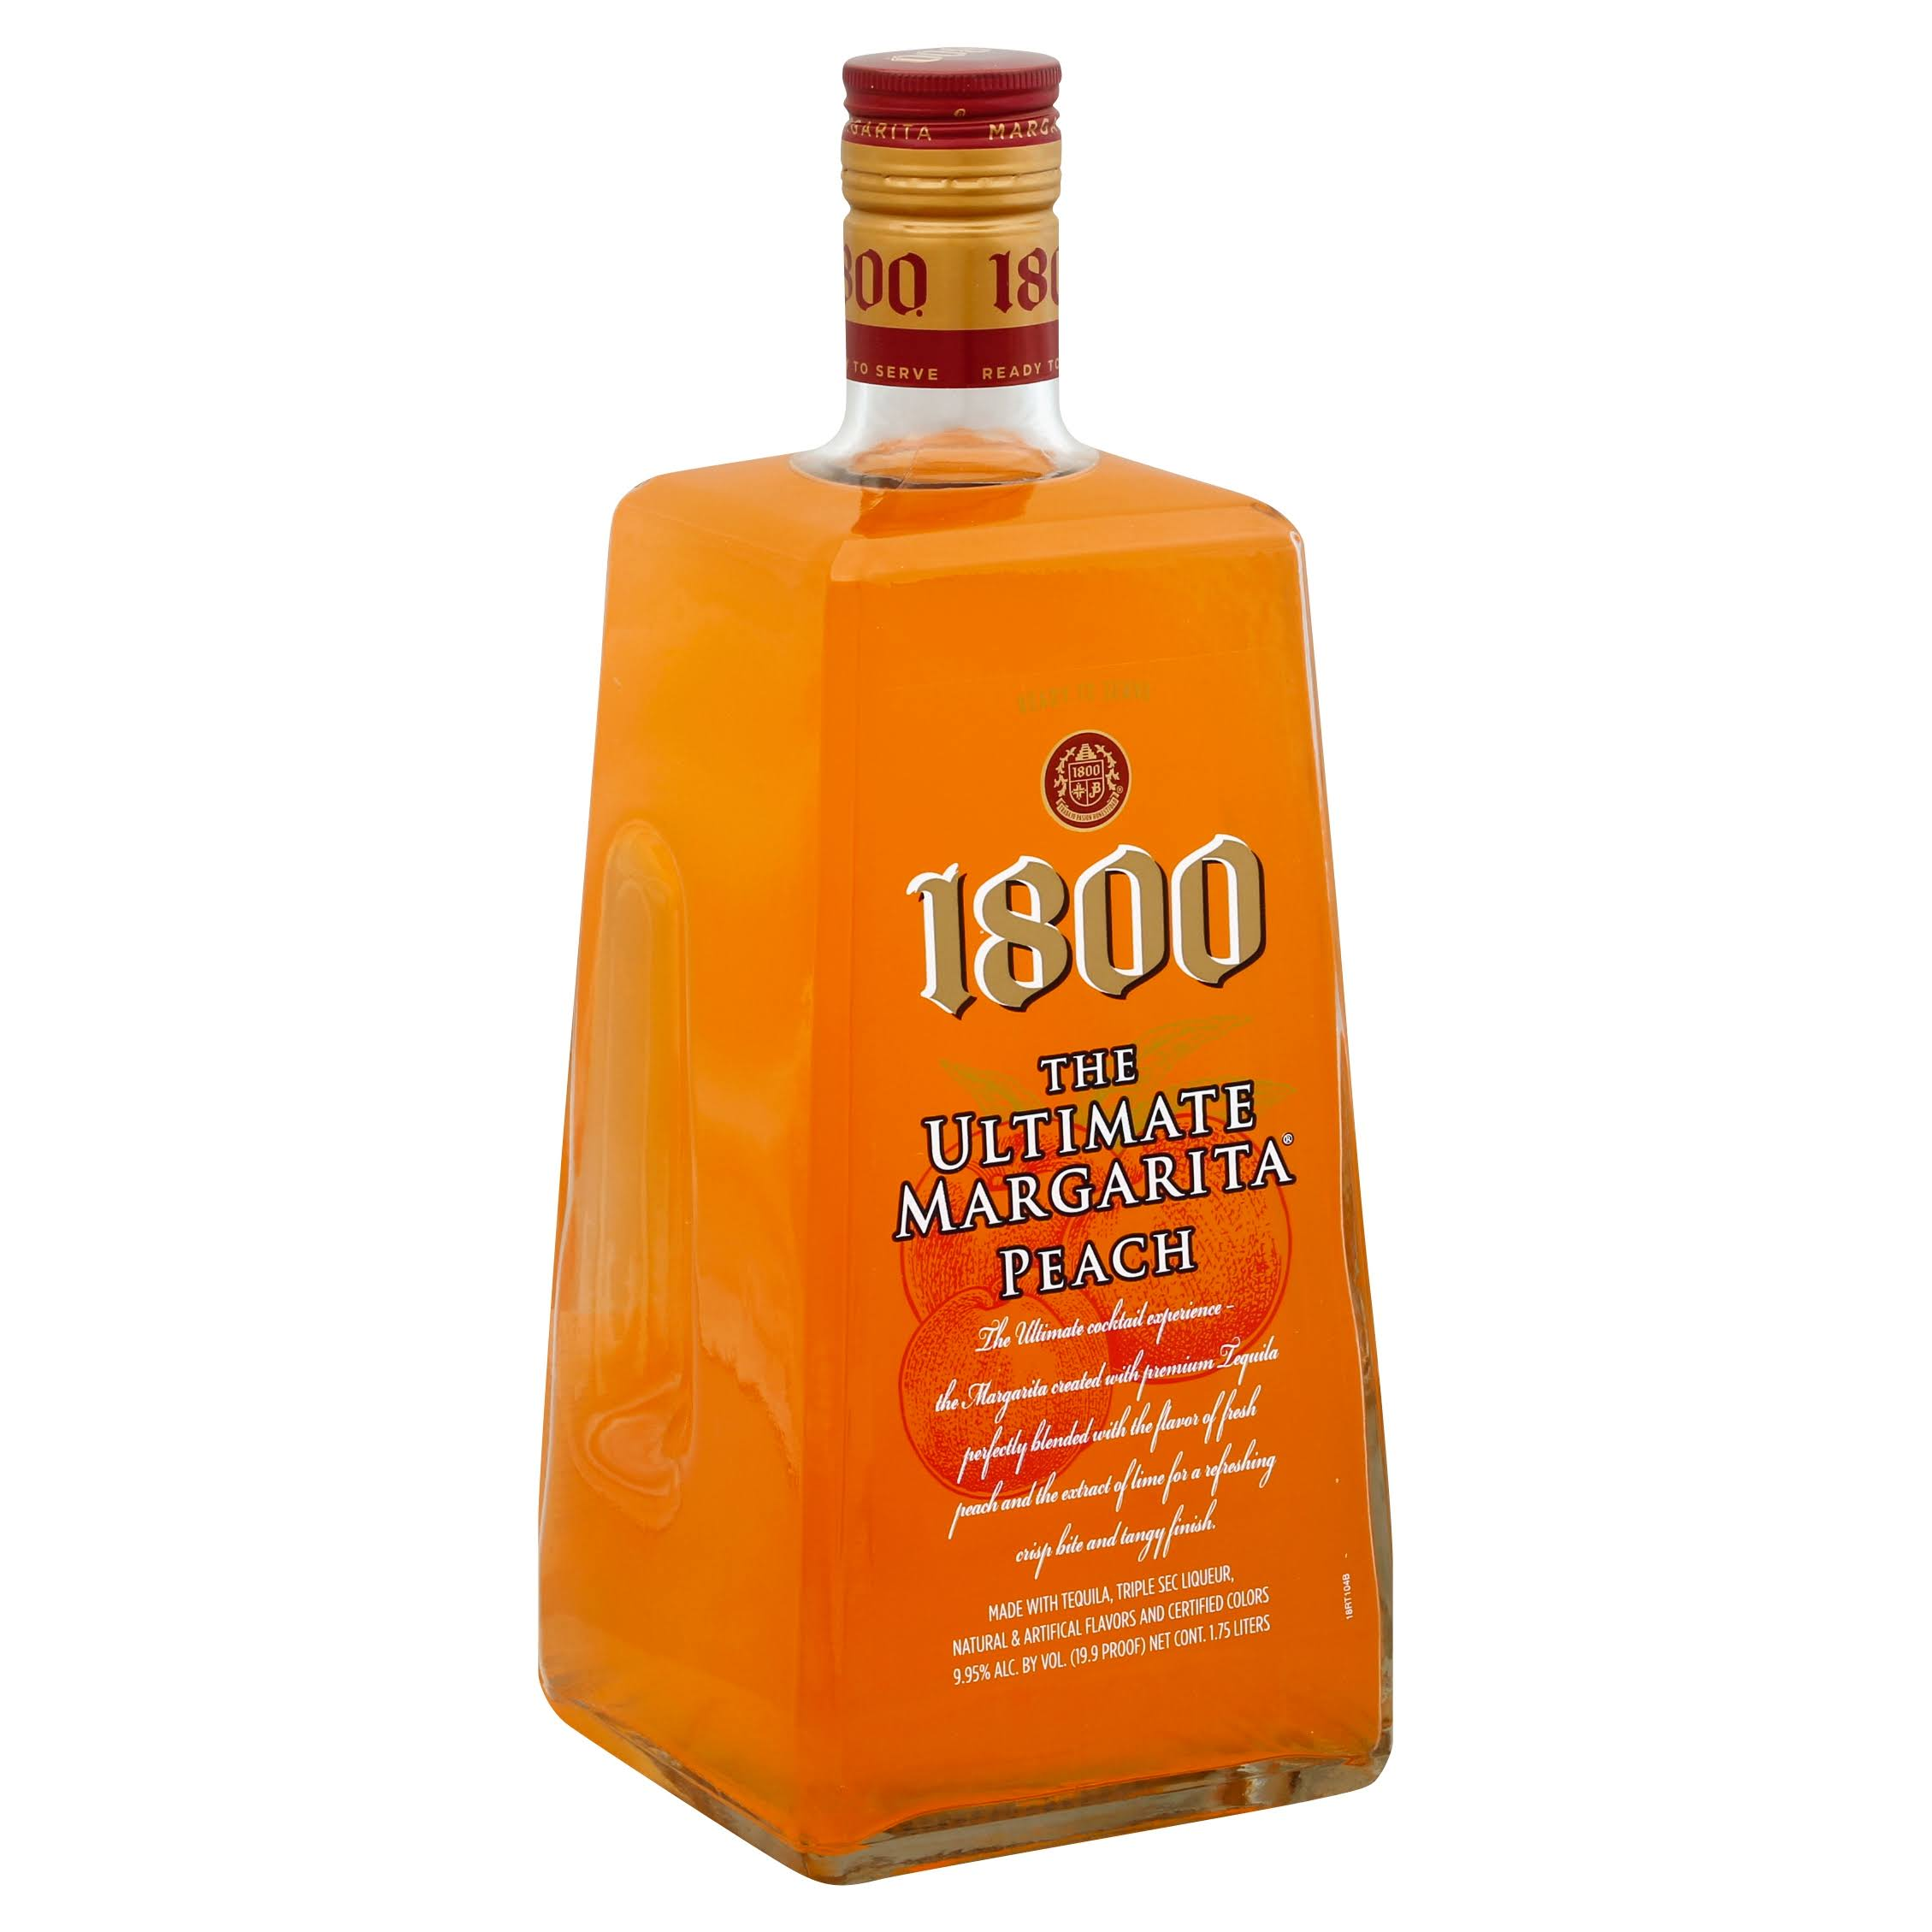 1800 The Ultimate Margarita Peach - 1.75l